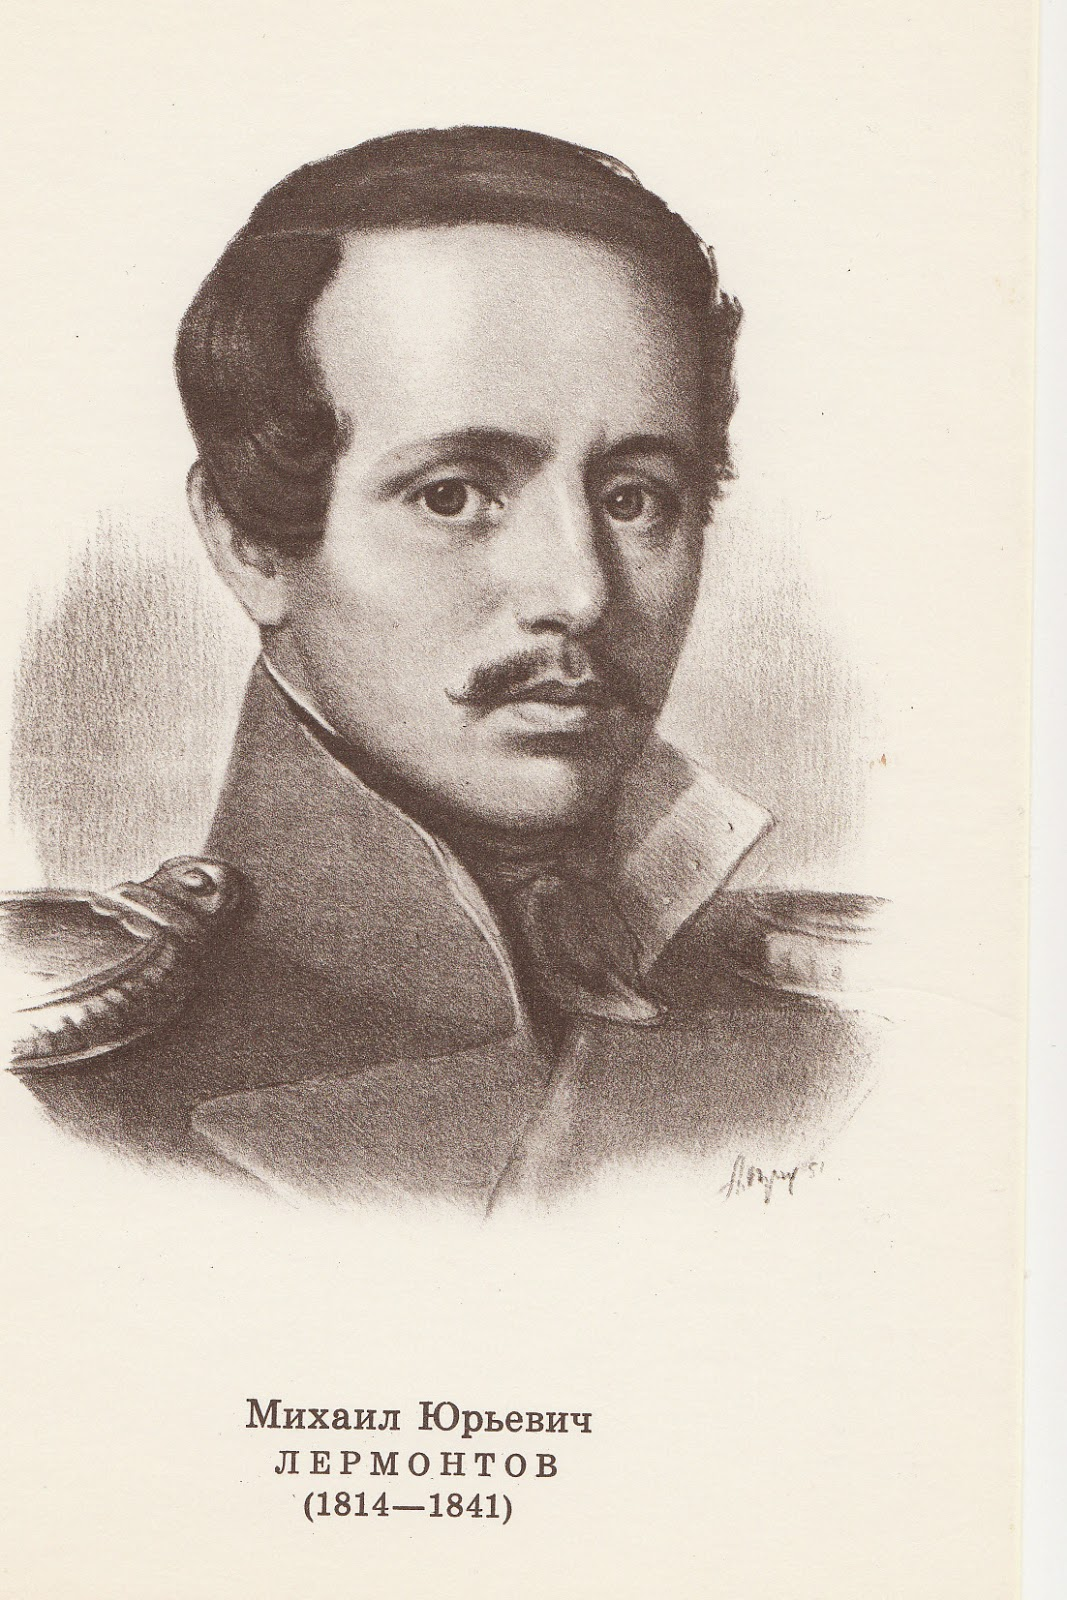 lermontov dating site 200th anniversary of lermontov october 15, 2014 8 comments by elena 200 years ago, 15 october 1814, the most famous romantic russian poet, mikhail lermontov, was born.